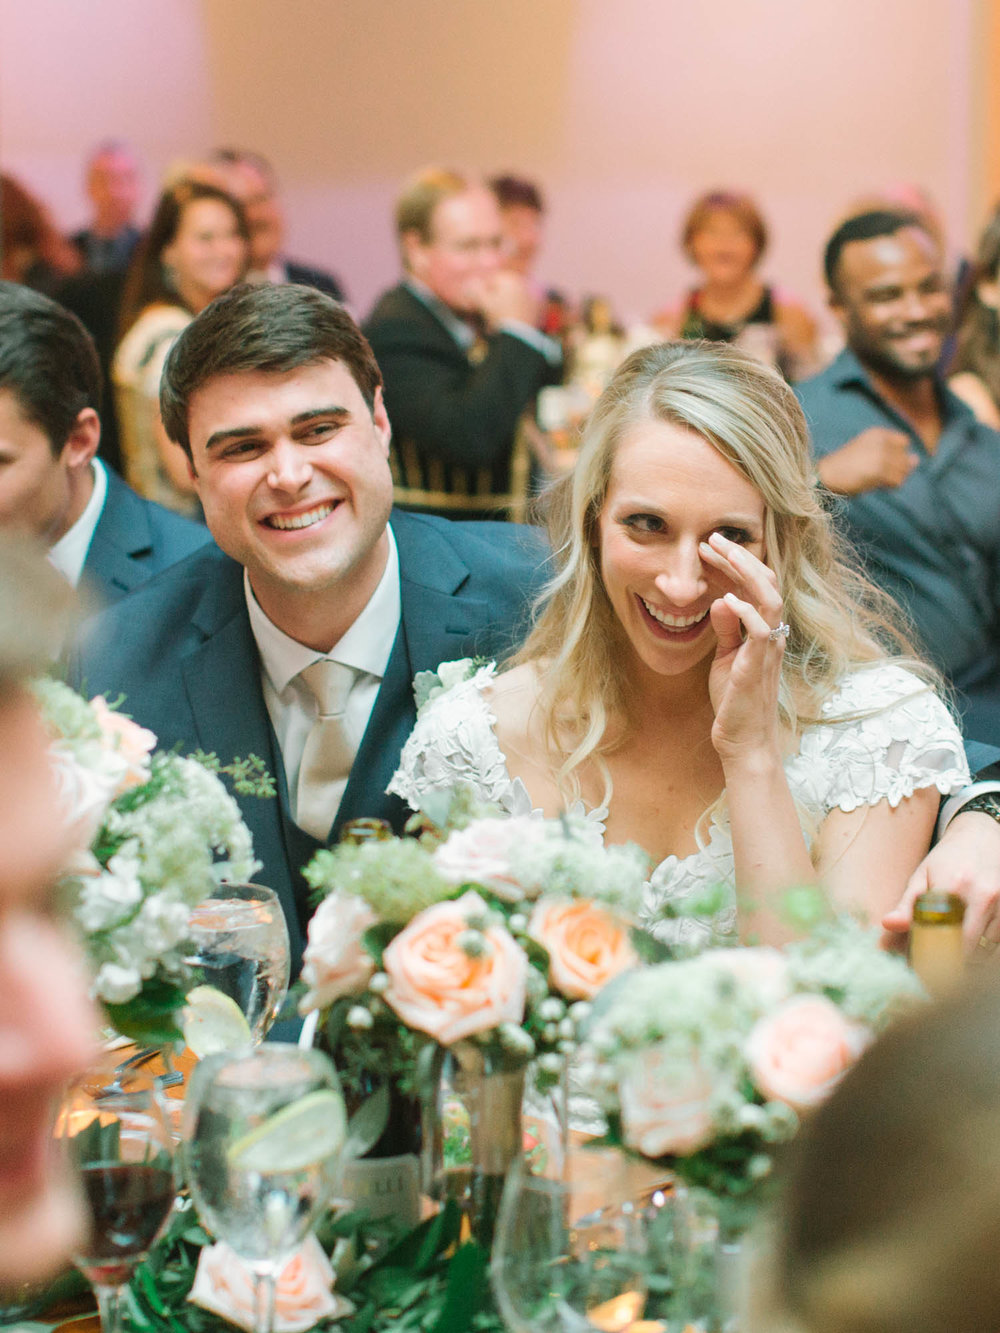 kateweinsteinphoto_kimpton_milwaukee_the_atrium_wedding-231.jpg